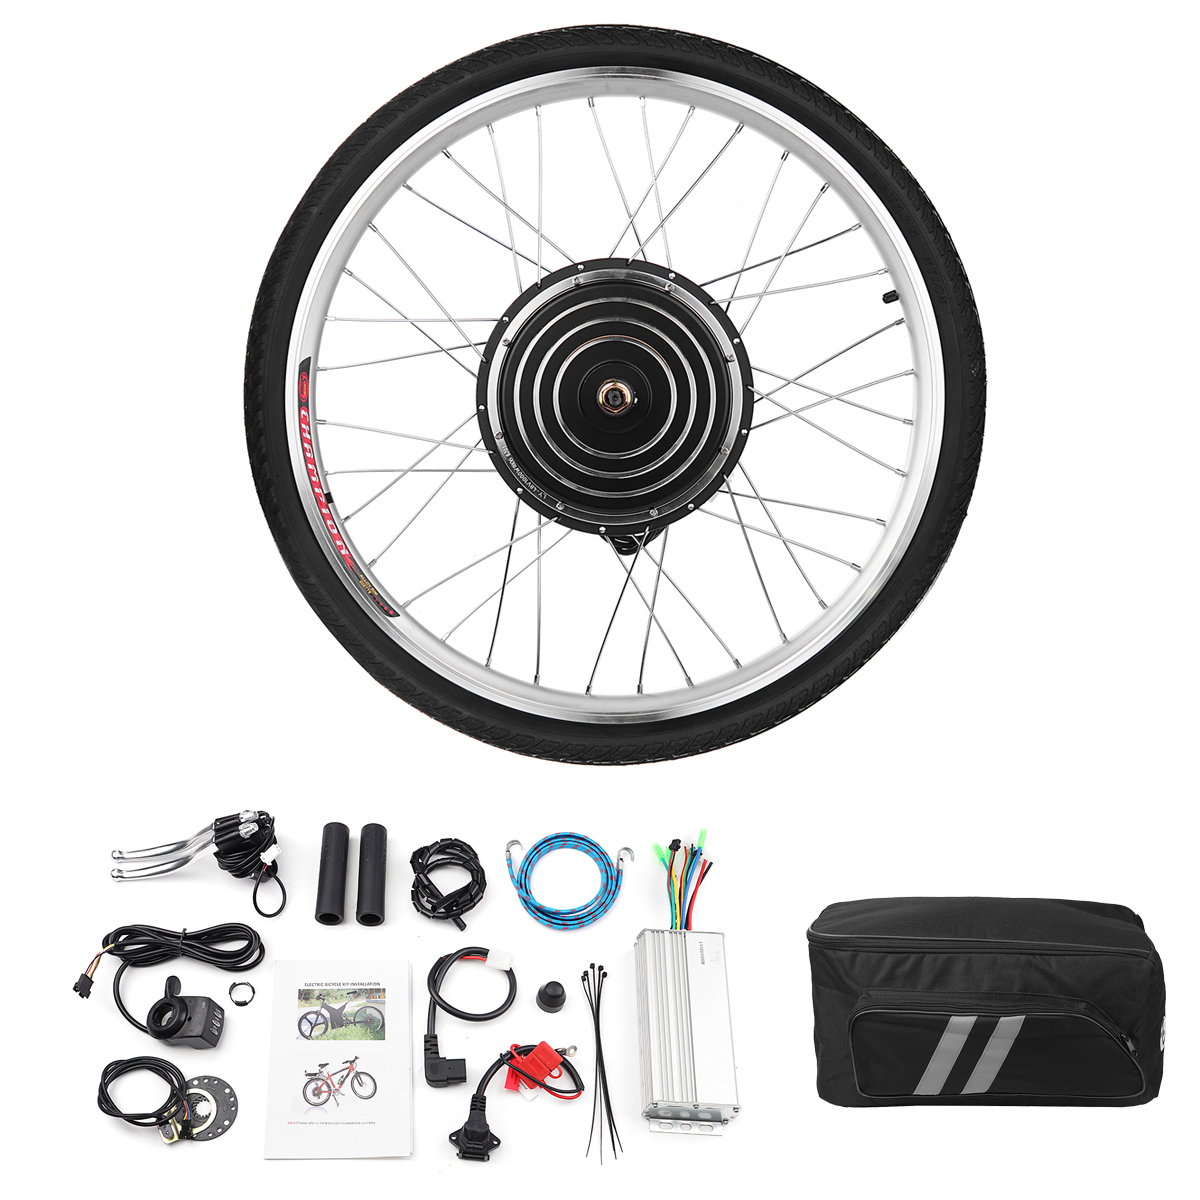 36V 500W 26inch Rear Wheel Electric Bicycle Brushless Motor Conversion Kit Bike Cycling Hub